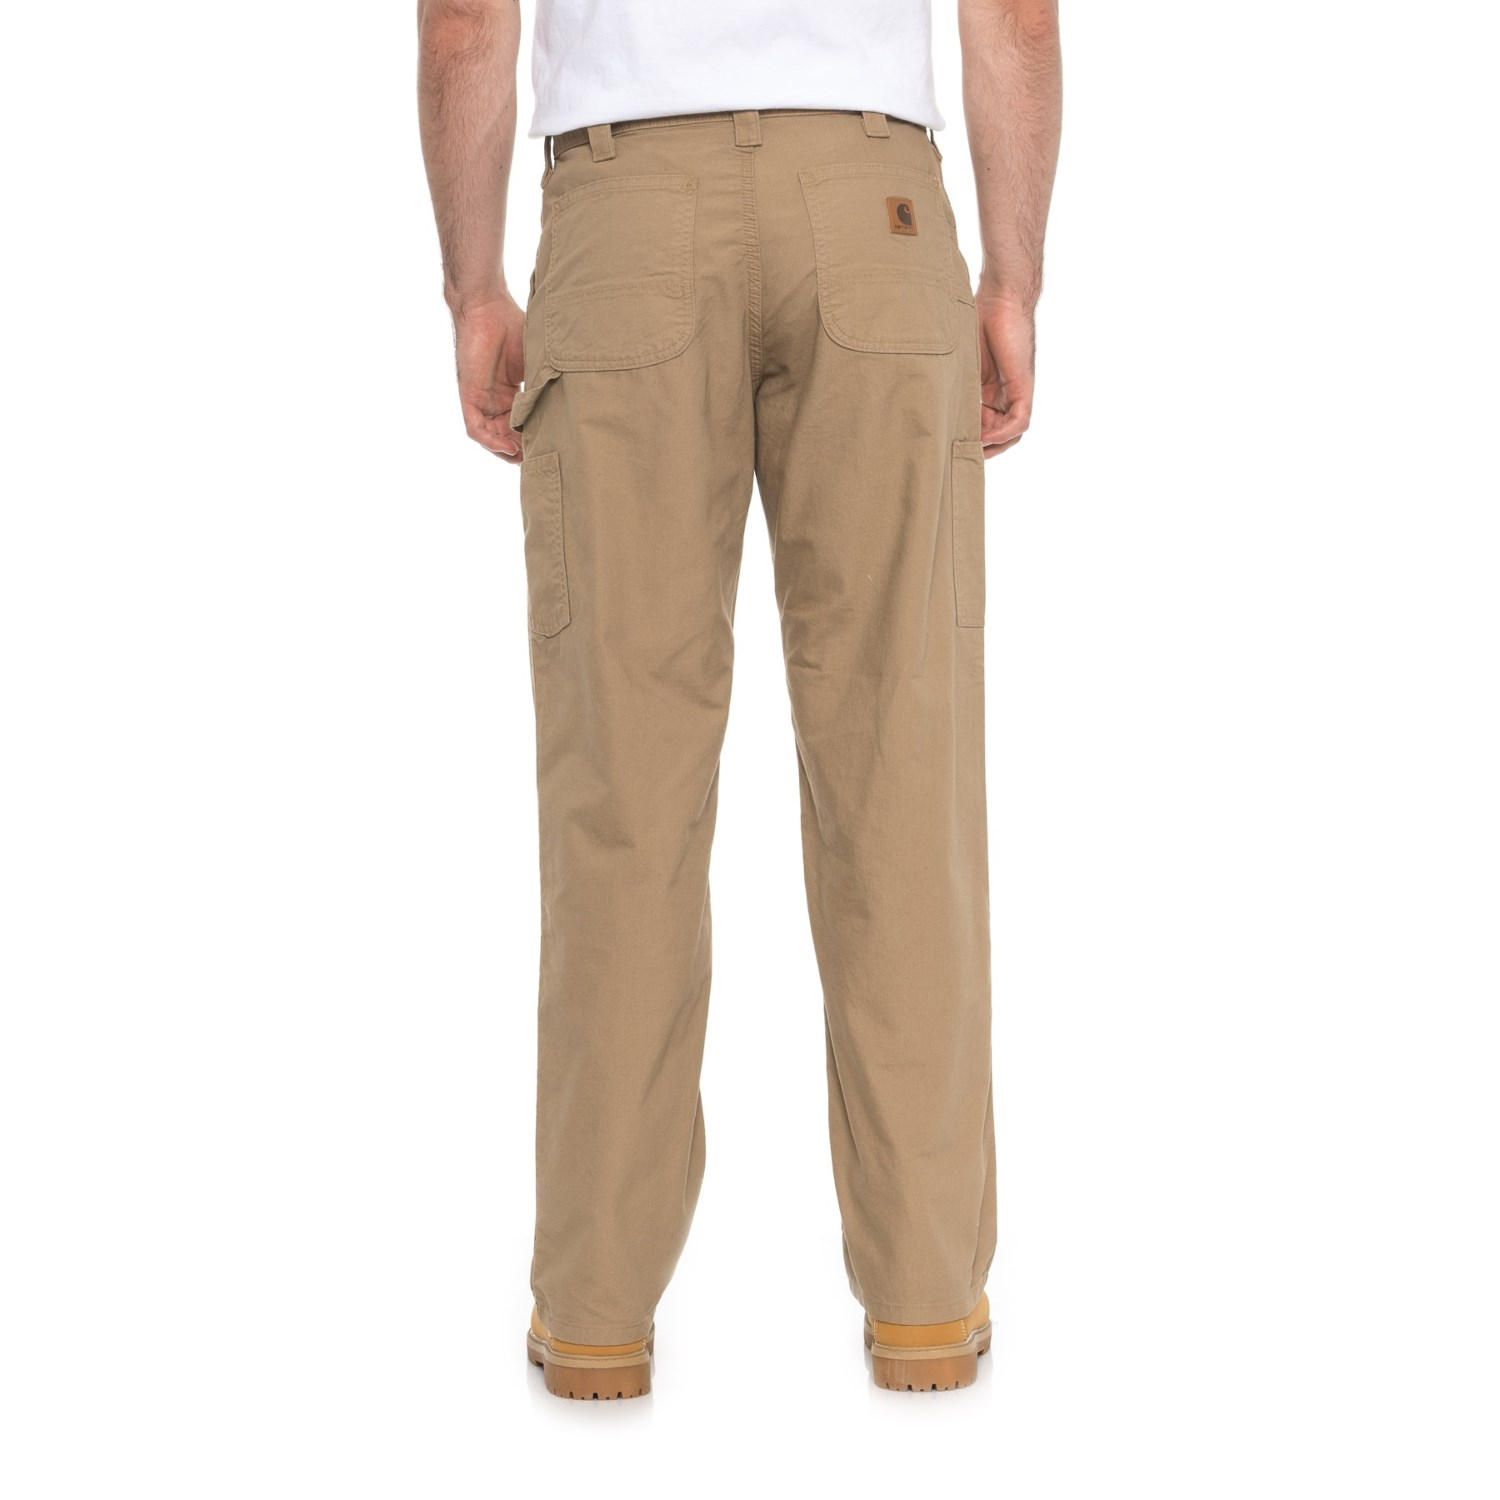 9158abb8c0 ... 519NM_3 Carhartt B151 Canvas Work Dungarees - Straight Leg, Factory  Seconds (For Men)